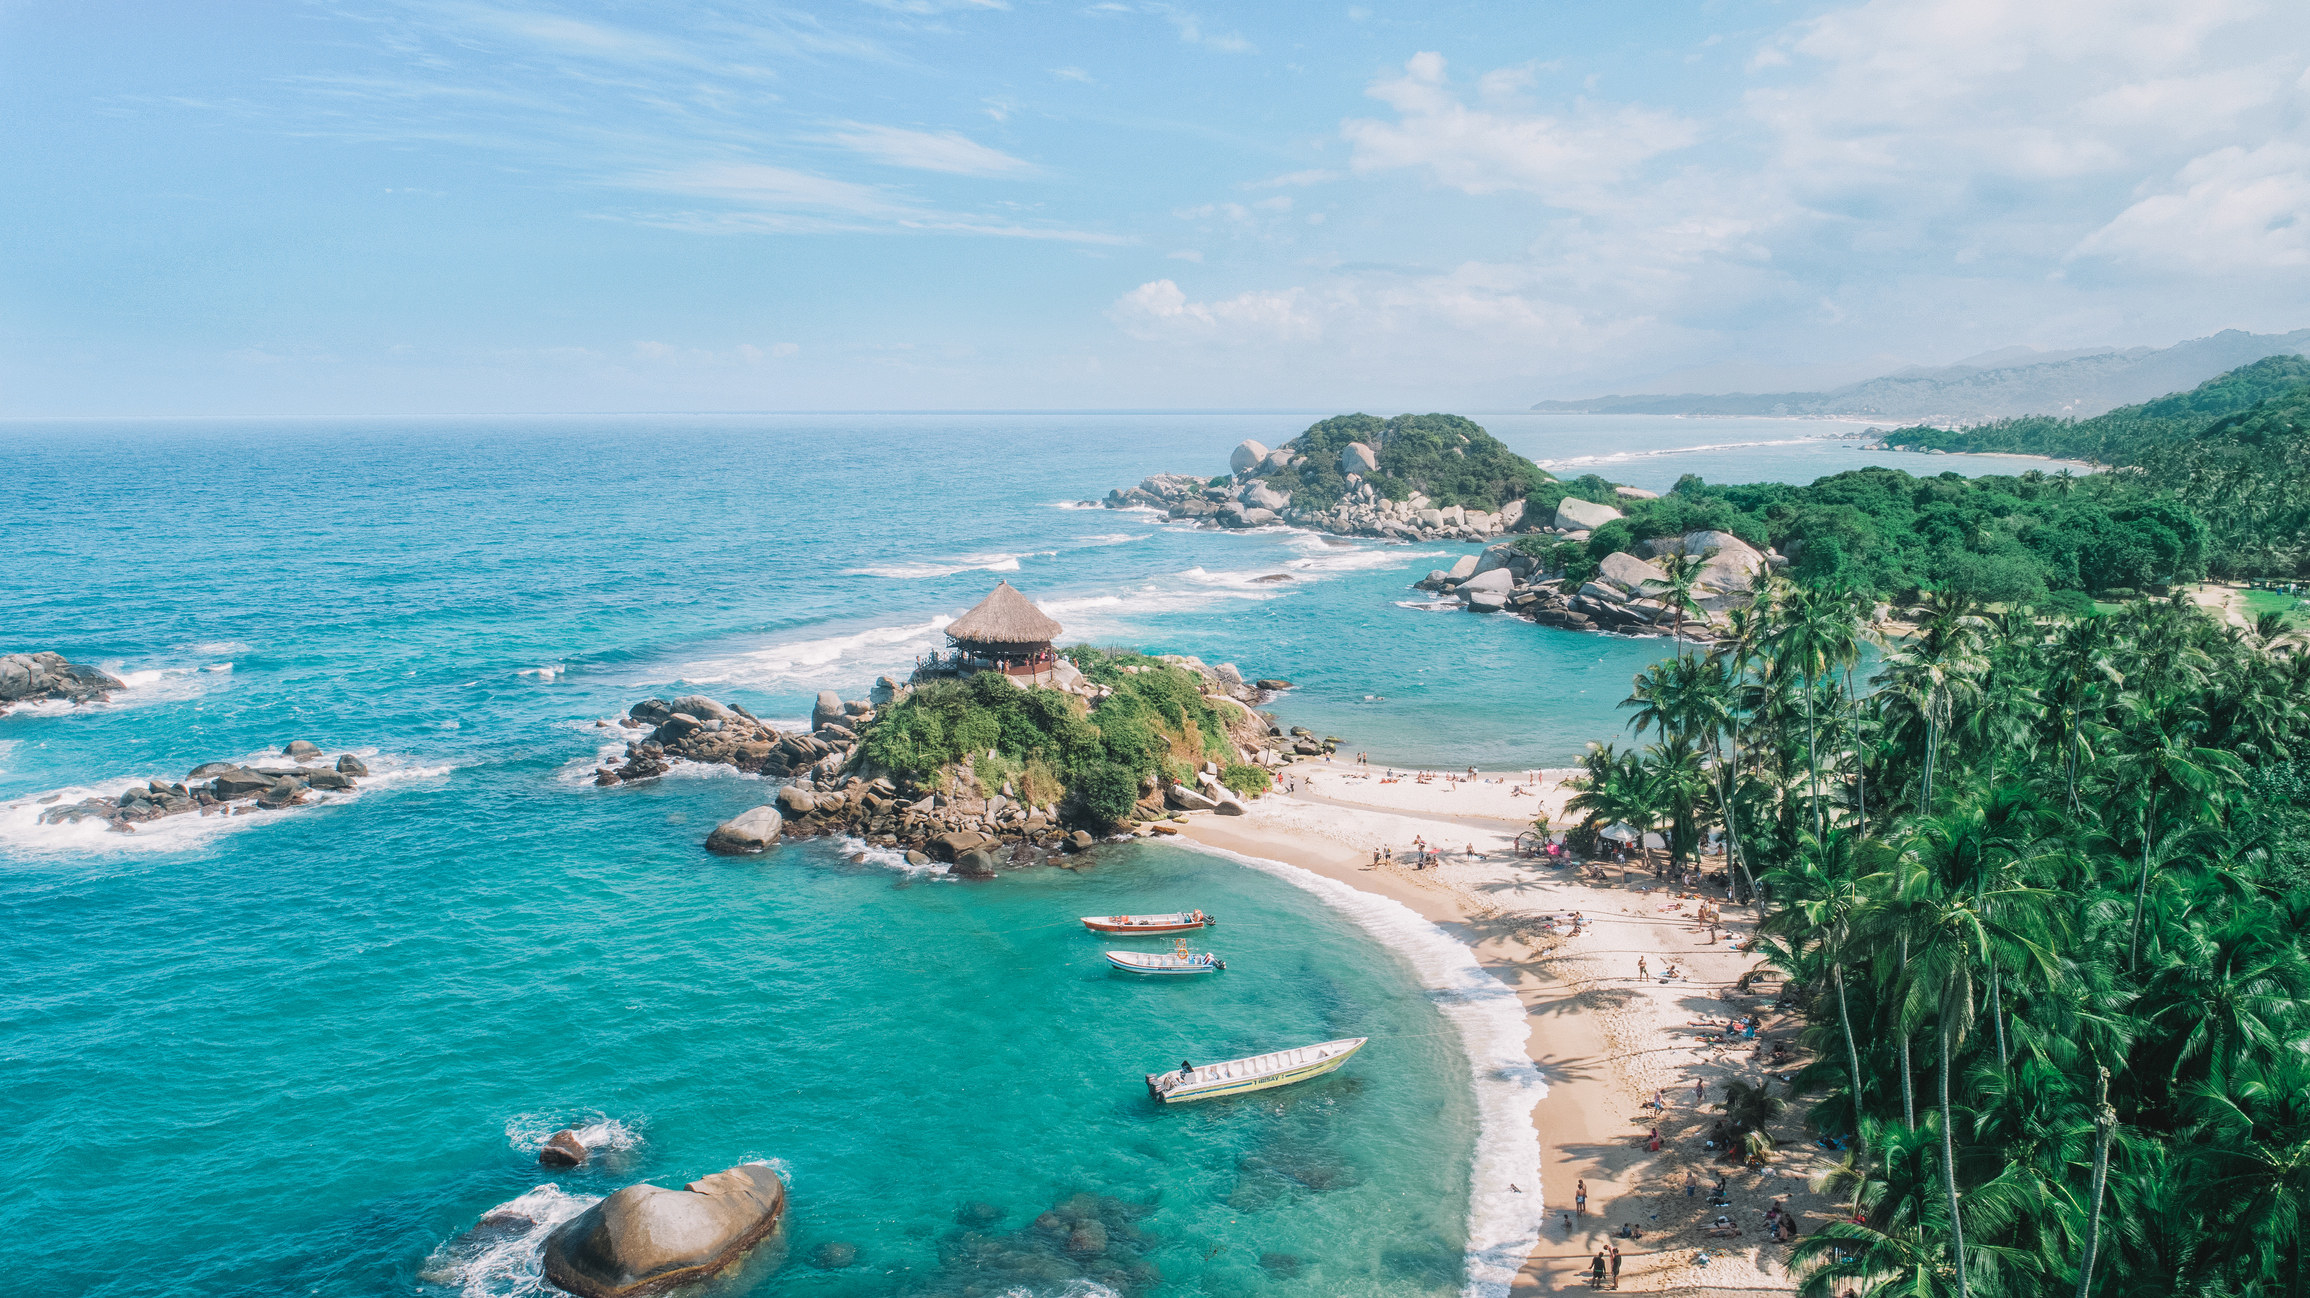 Tayrona National Park in Colombia.